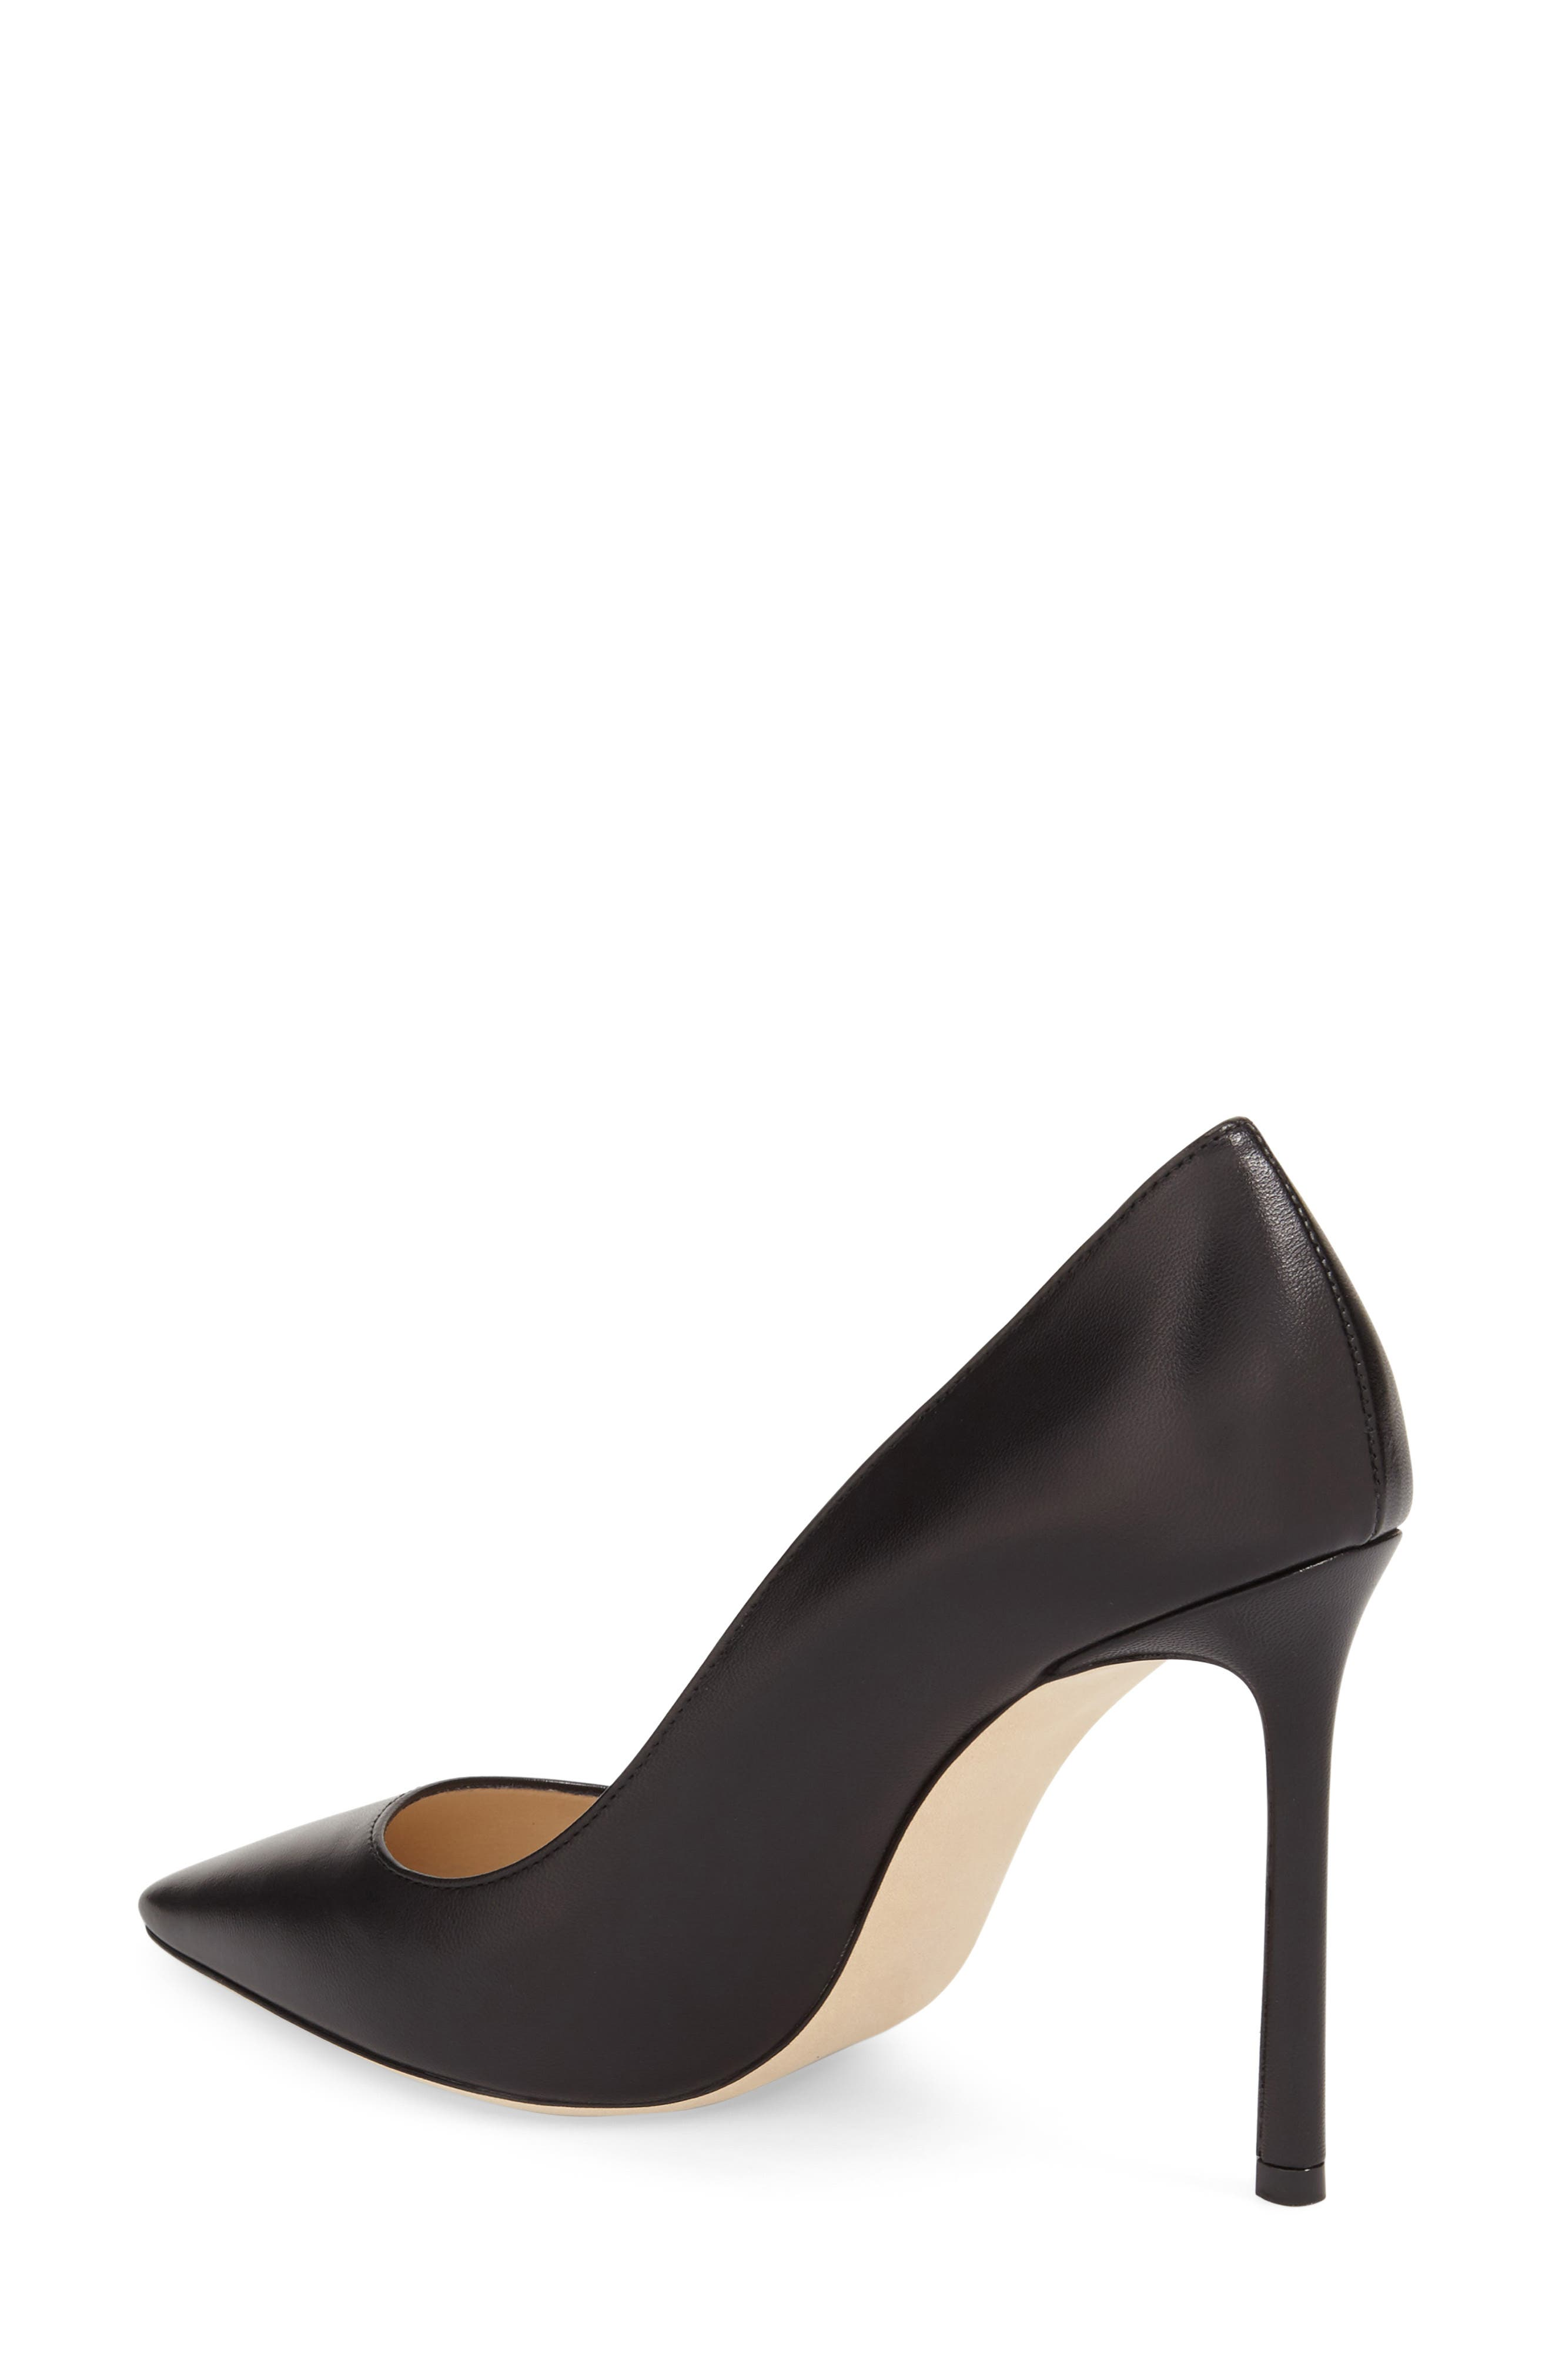 'Romy' Pointy Toe Pump,                             Alternate thumbnail 2, color,                             BLACK LEATHER